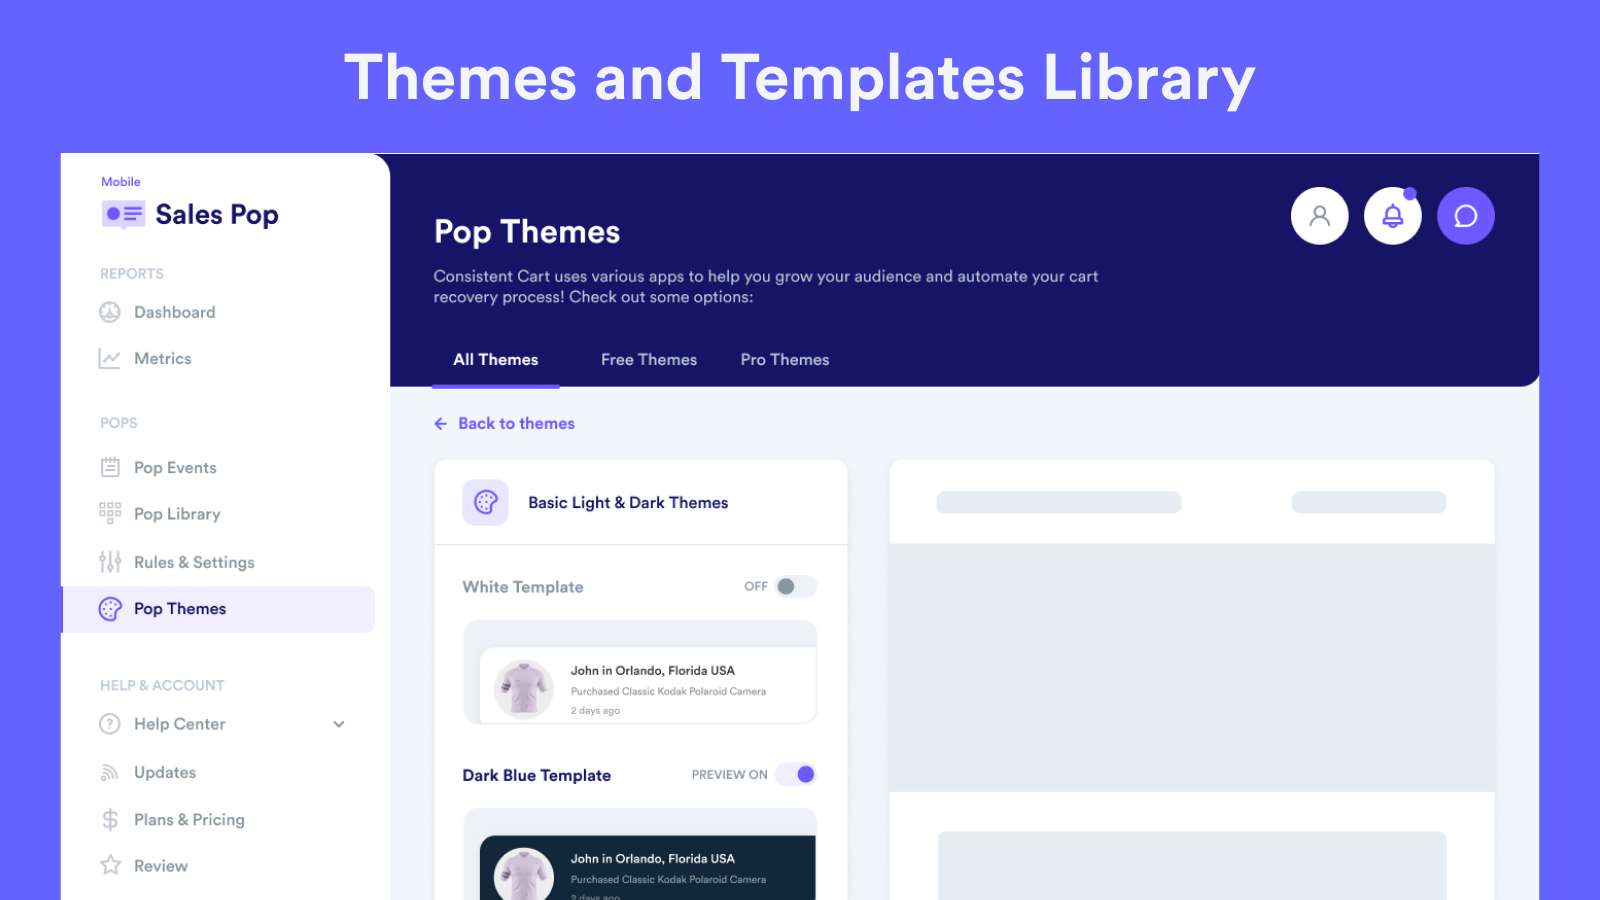 Themes and Templates Library